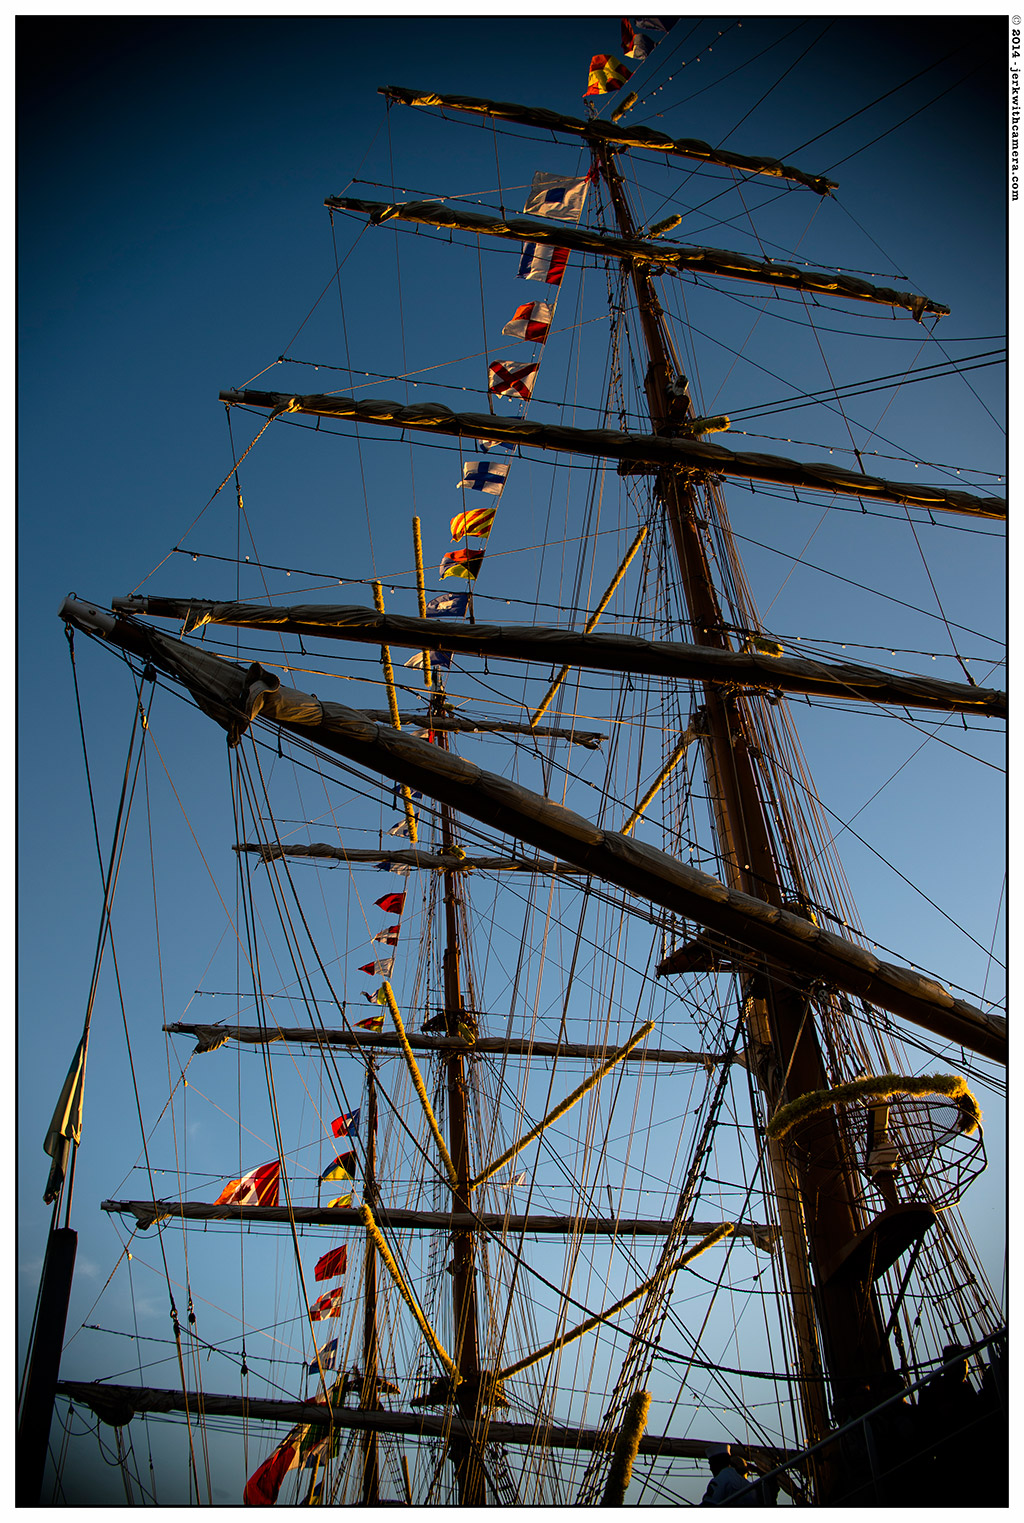 nikon DF - Mexican Navy's tall ship Cuauhtémoc at the Burrard Dry Dock Pier